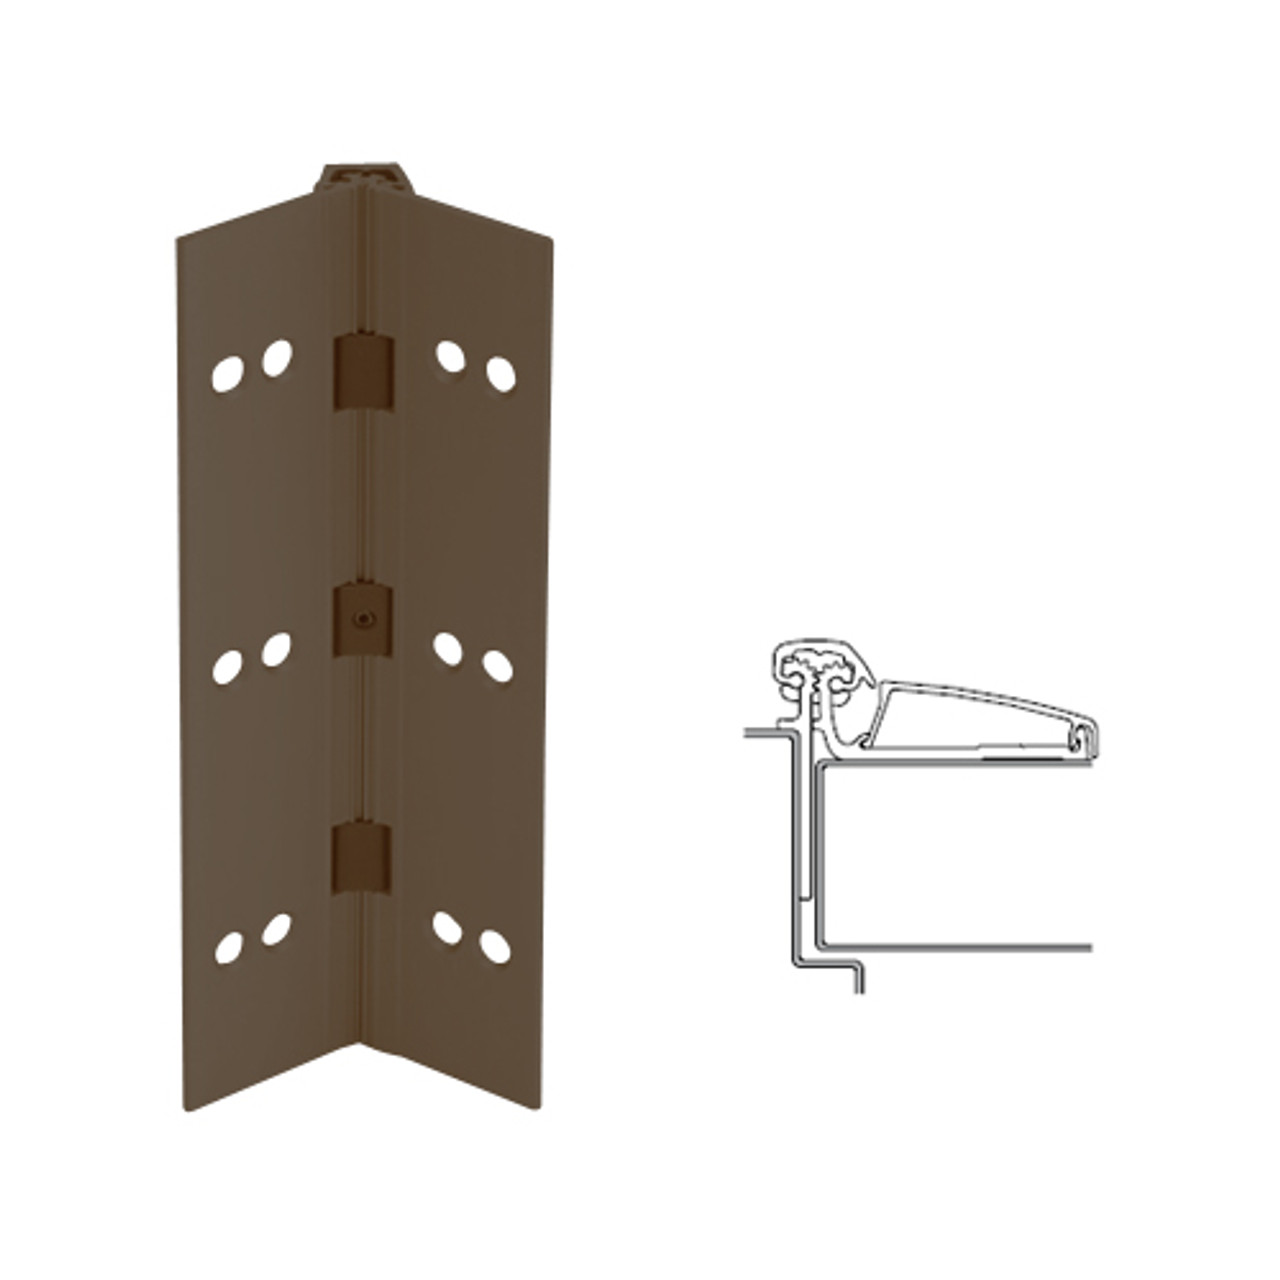 045XY-313AN-120-SECWDHM IVES Adjustable Half Surface Continuous Geared Hinges with Security Screws - Hex Pin Drive in Dark Bronze Anodized